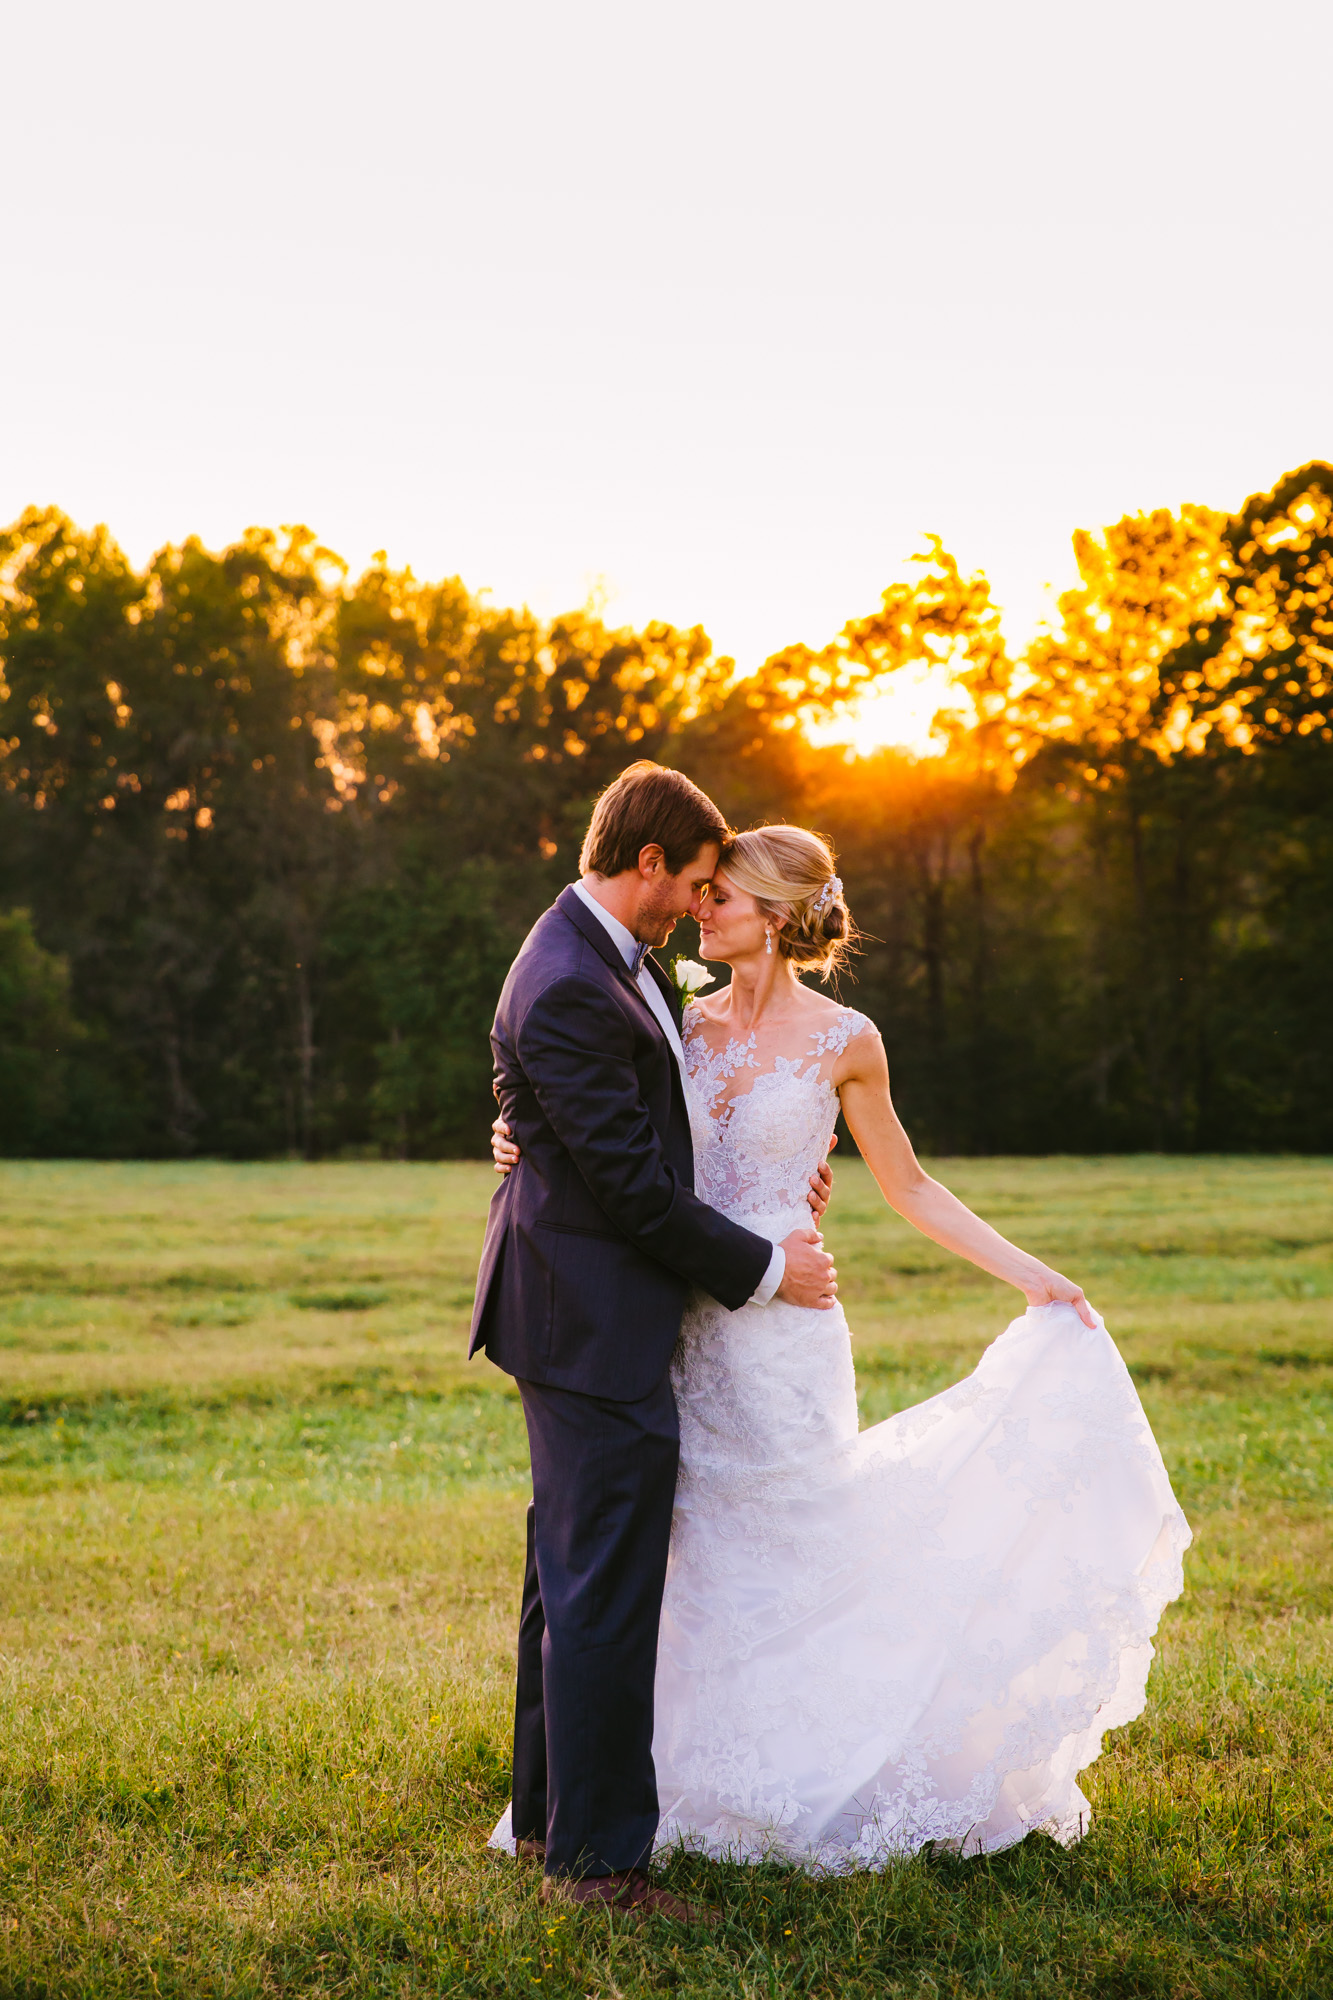 Waynesville, NC Wedding Photography | Bride and Groom Holding Each other at Sunset